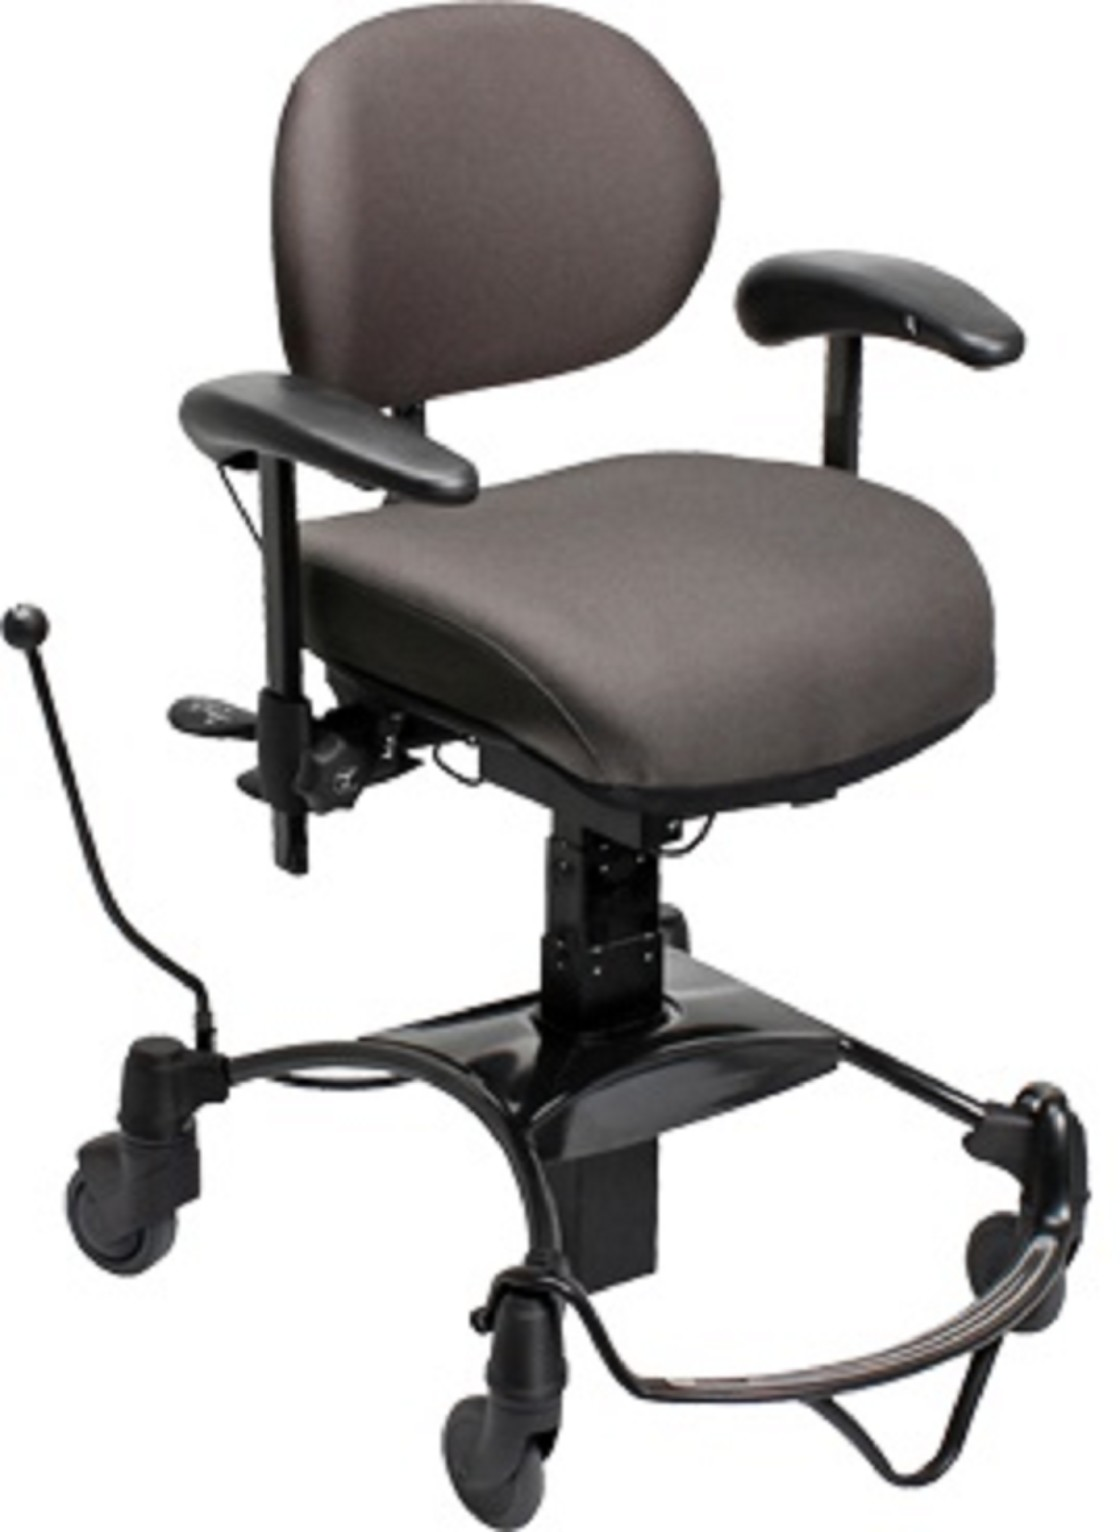 Vela Adjustable Electrical Workplace Chair